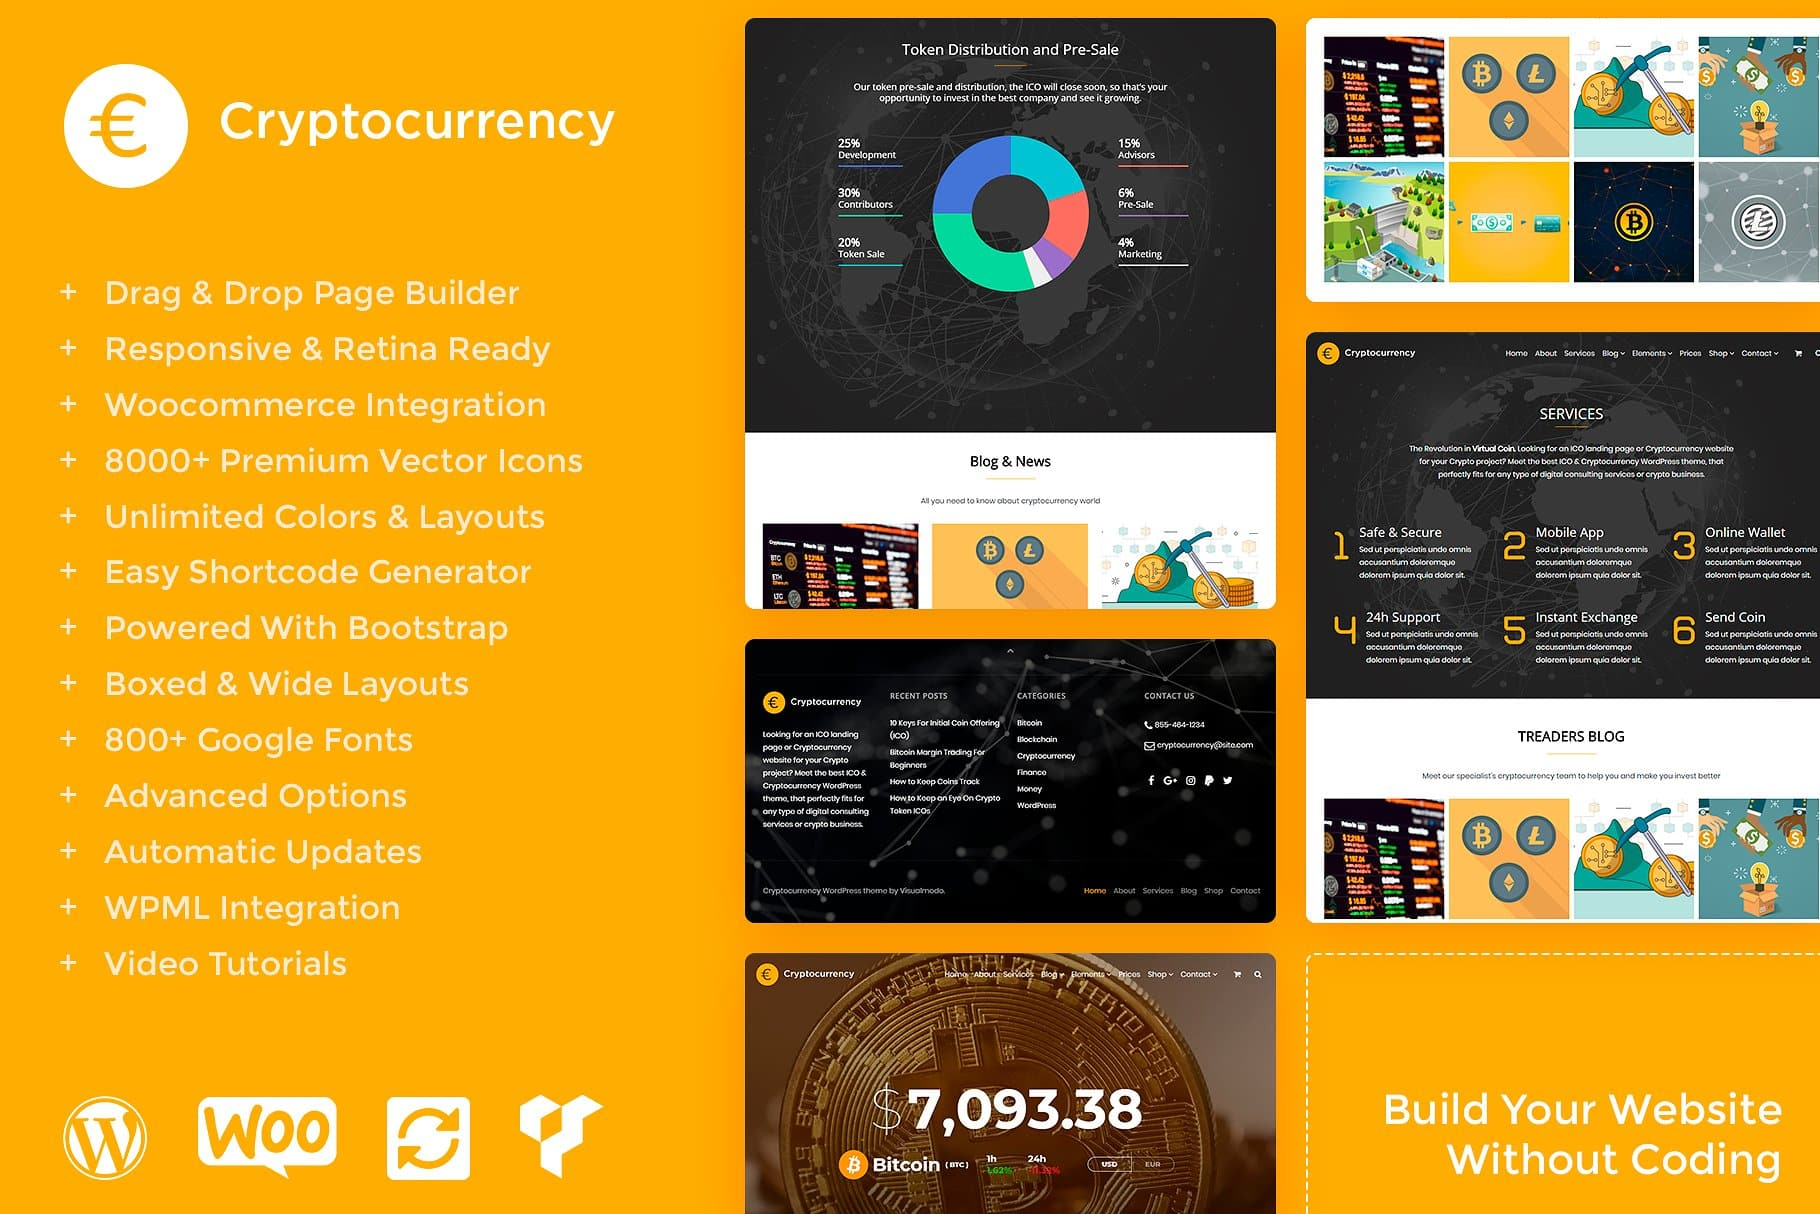 Bitcoin WordPress Theme - Cryptocurrency WordPress Theme - Presentation